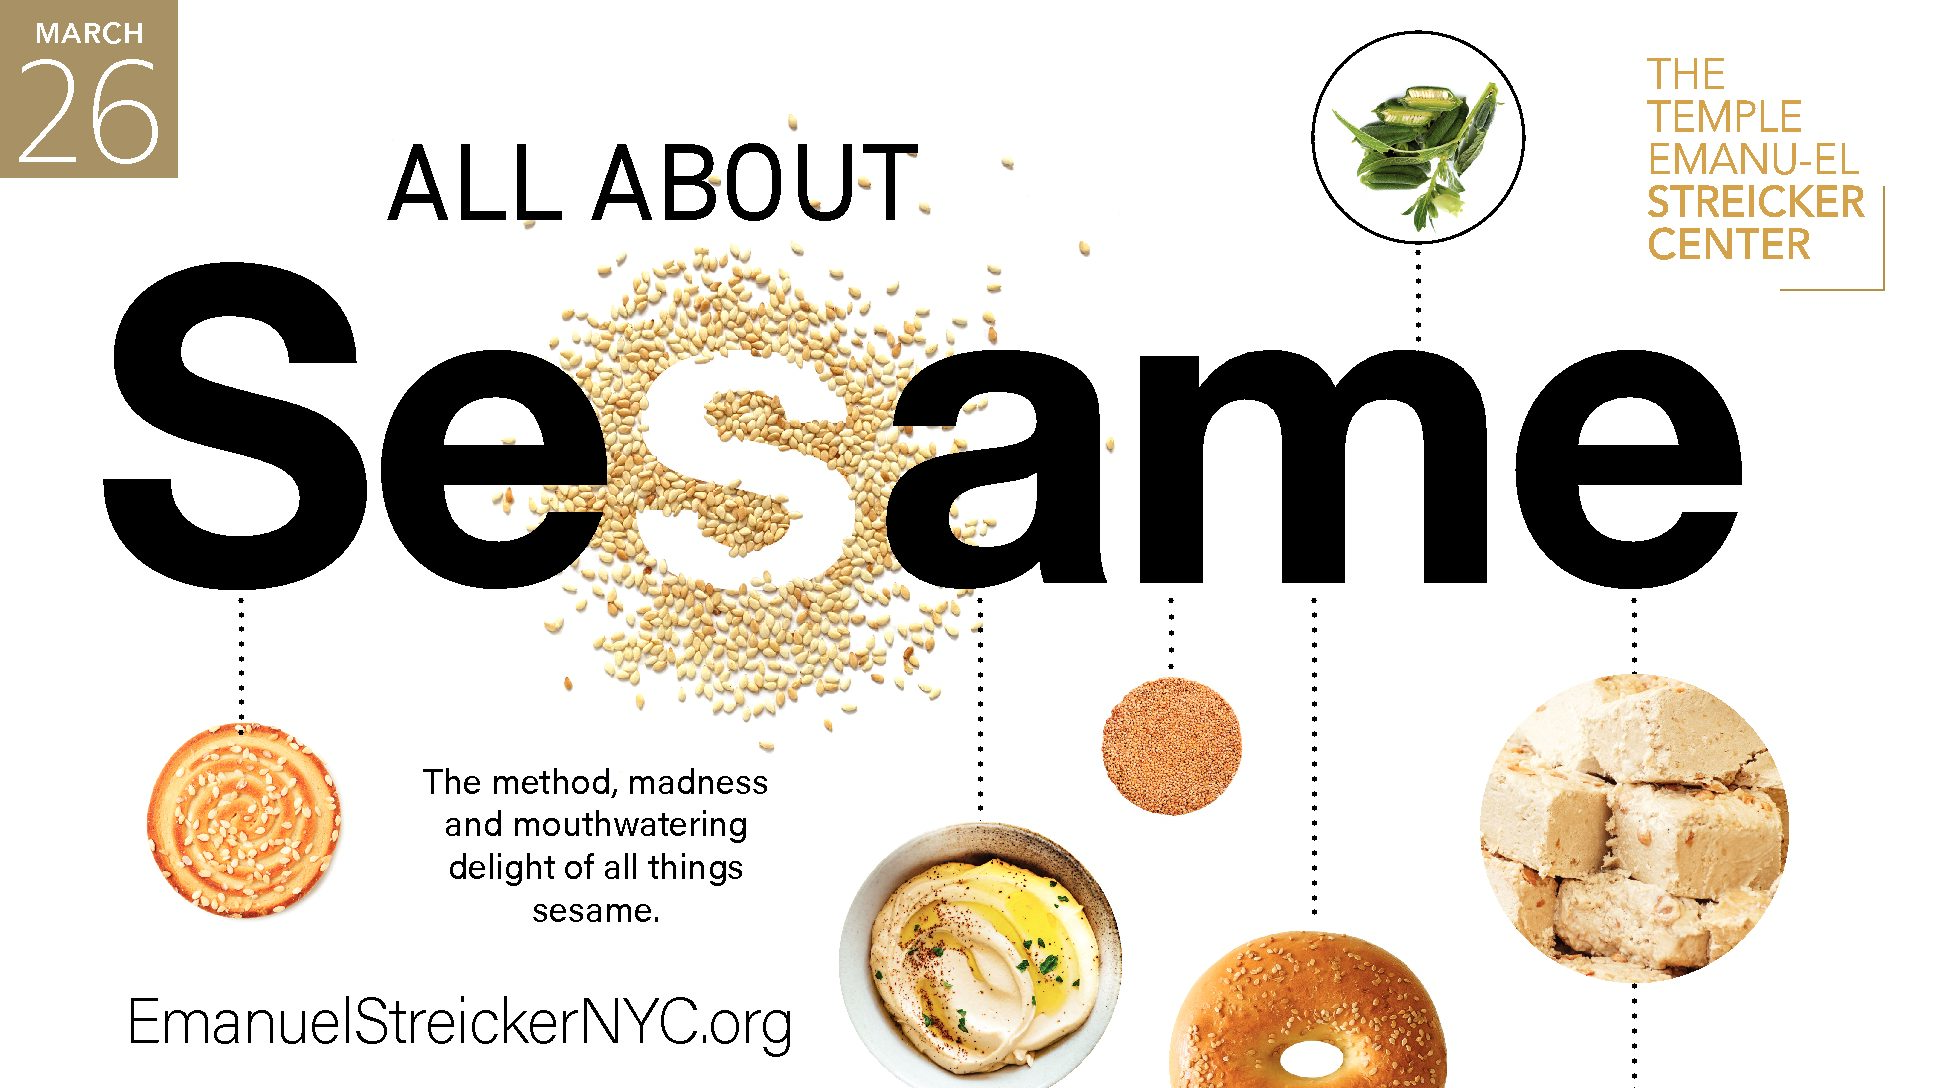 It's All about Sesame